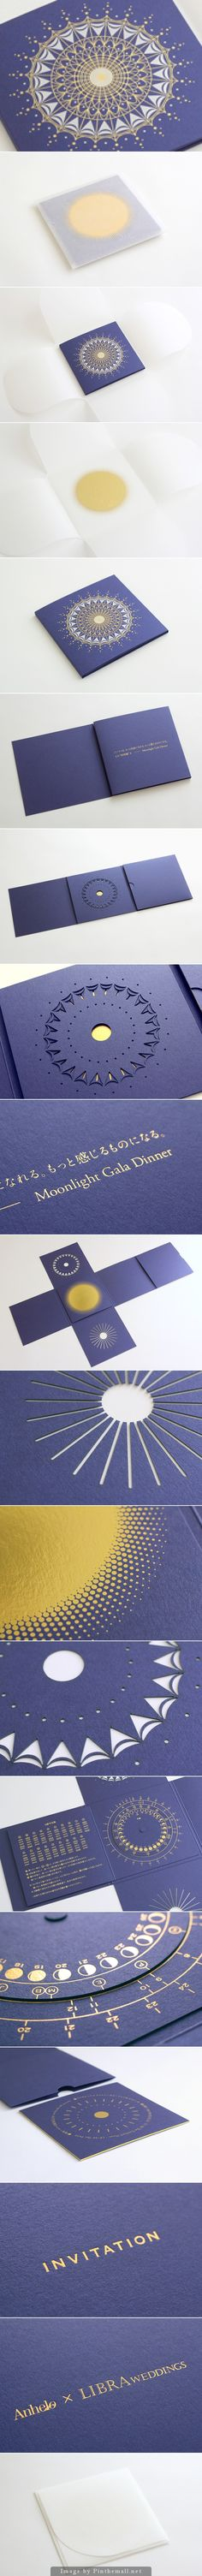 Anhelo × LIBRA WEDDINGS the most gorgeous wedding invitation packaging curated by Packaging Diva PD Graphic Design Branding, Brochure Design, Packaging Design, Wedding Invitation Packages, Gala Invitation, Stationary Branding, Stationery, Furniture Brochure, Cd Cover